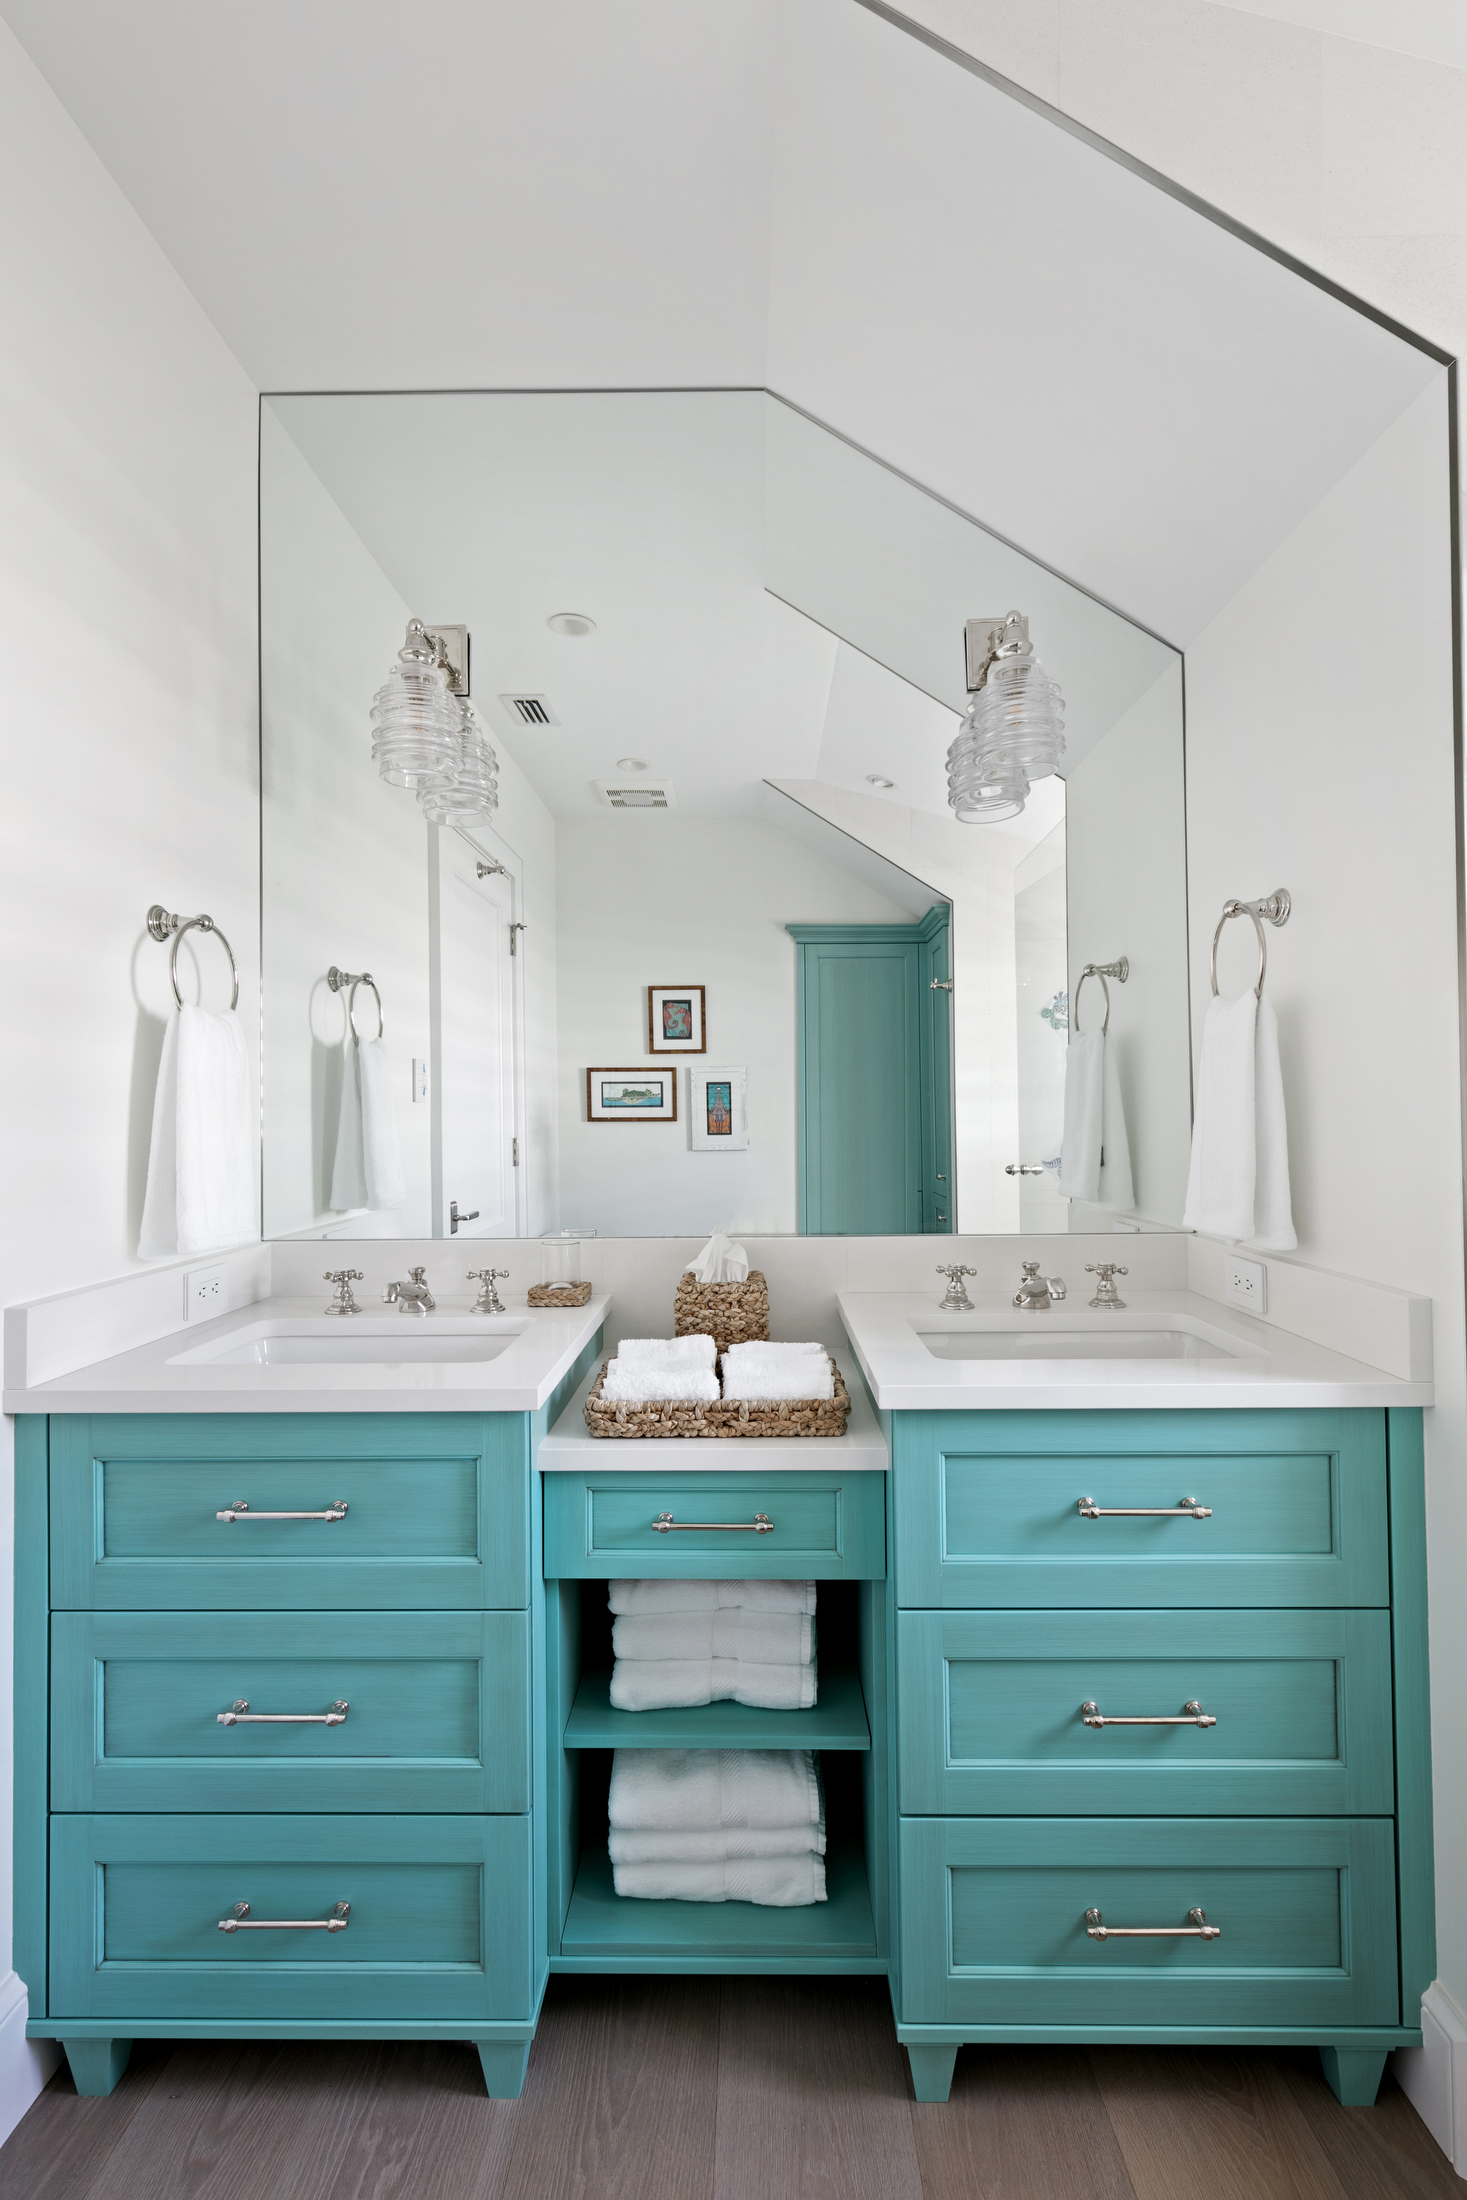 Dual sink bathroom in aqua and white